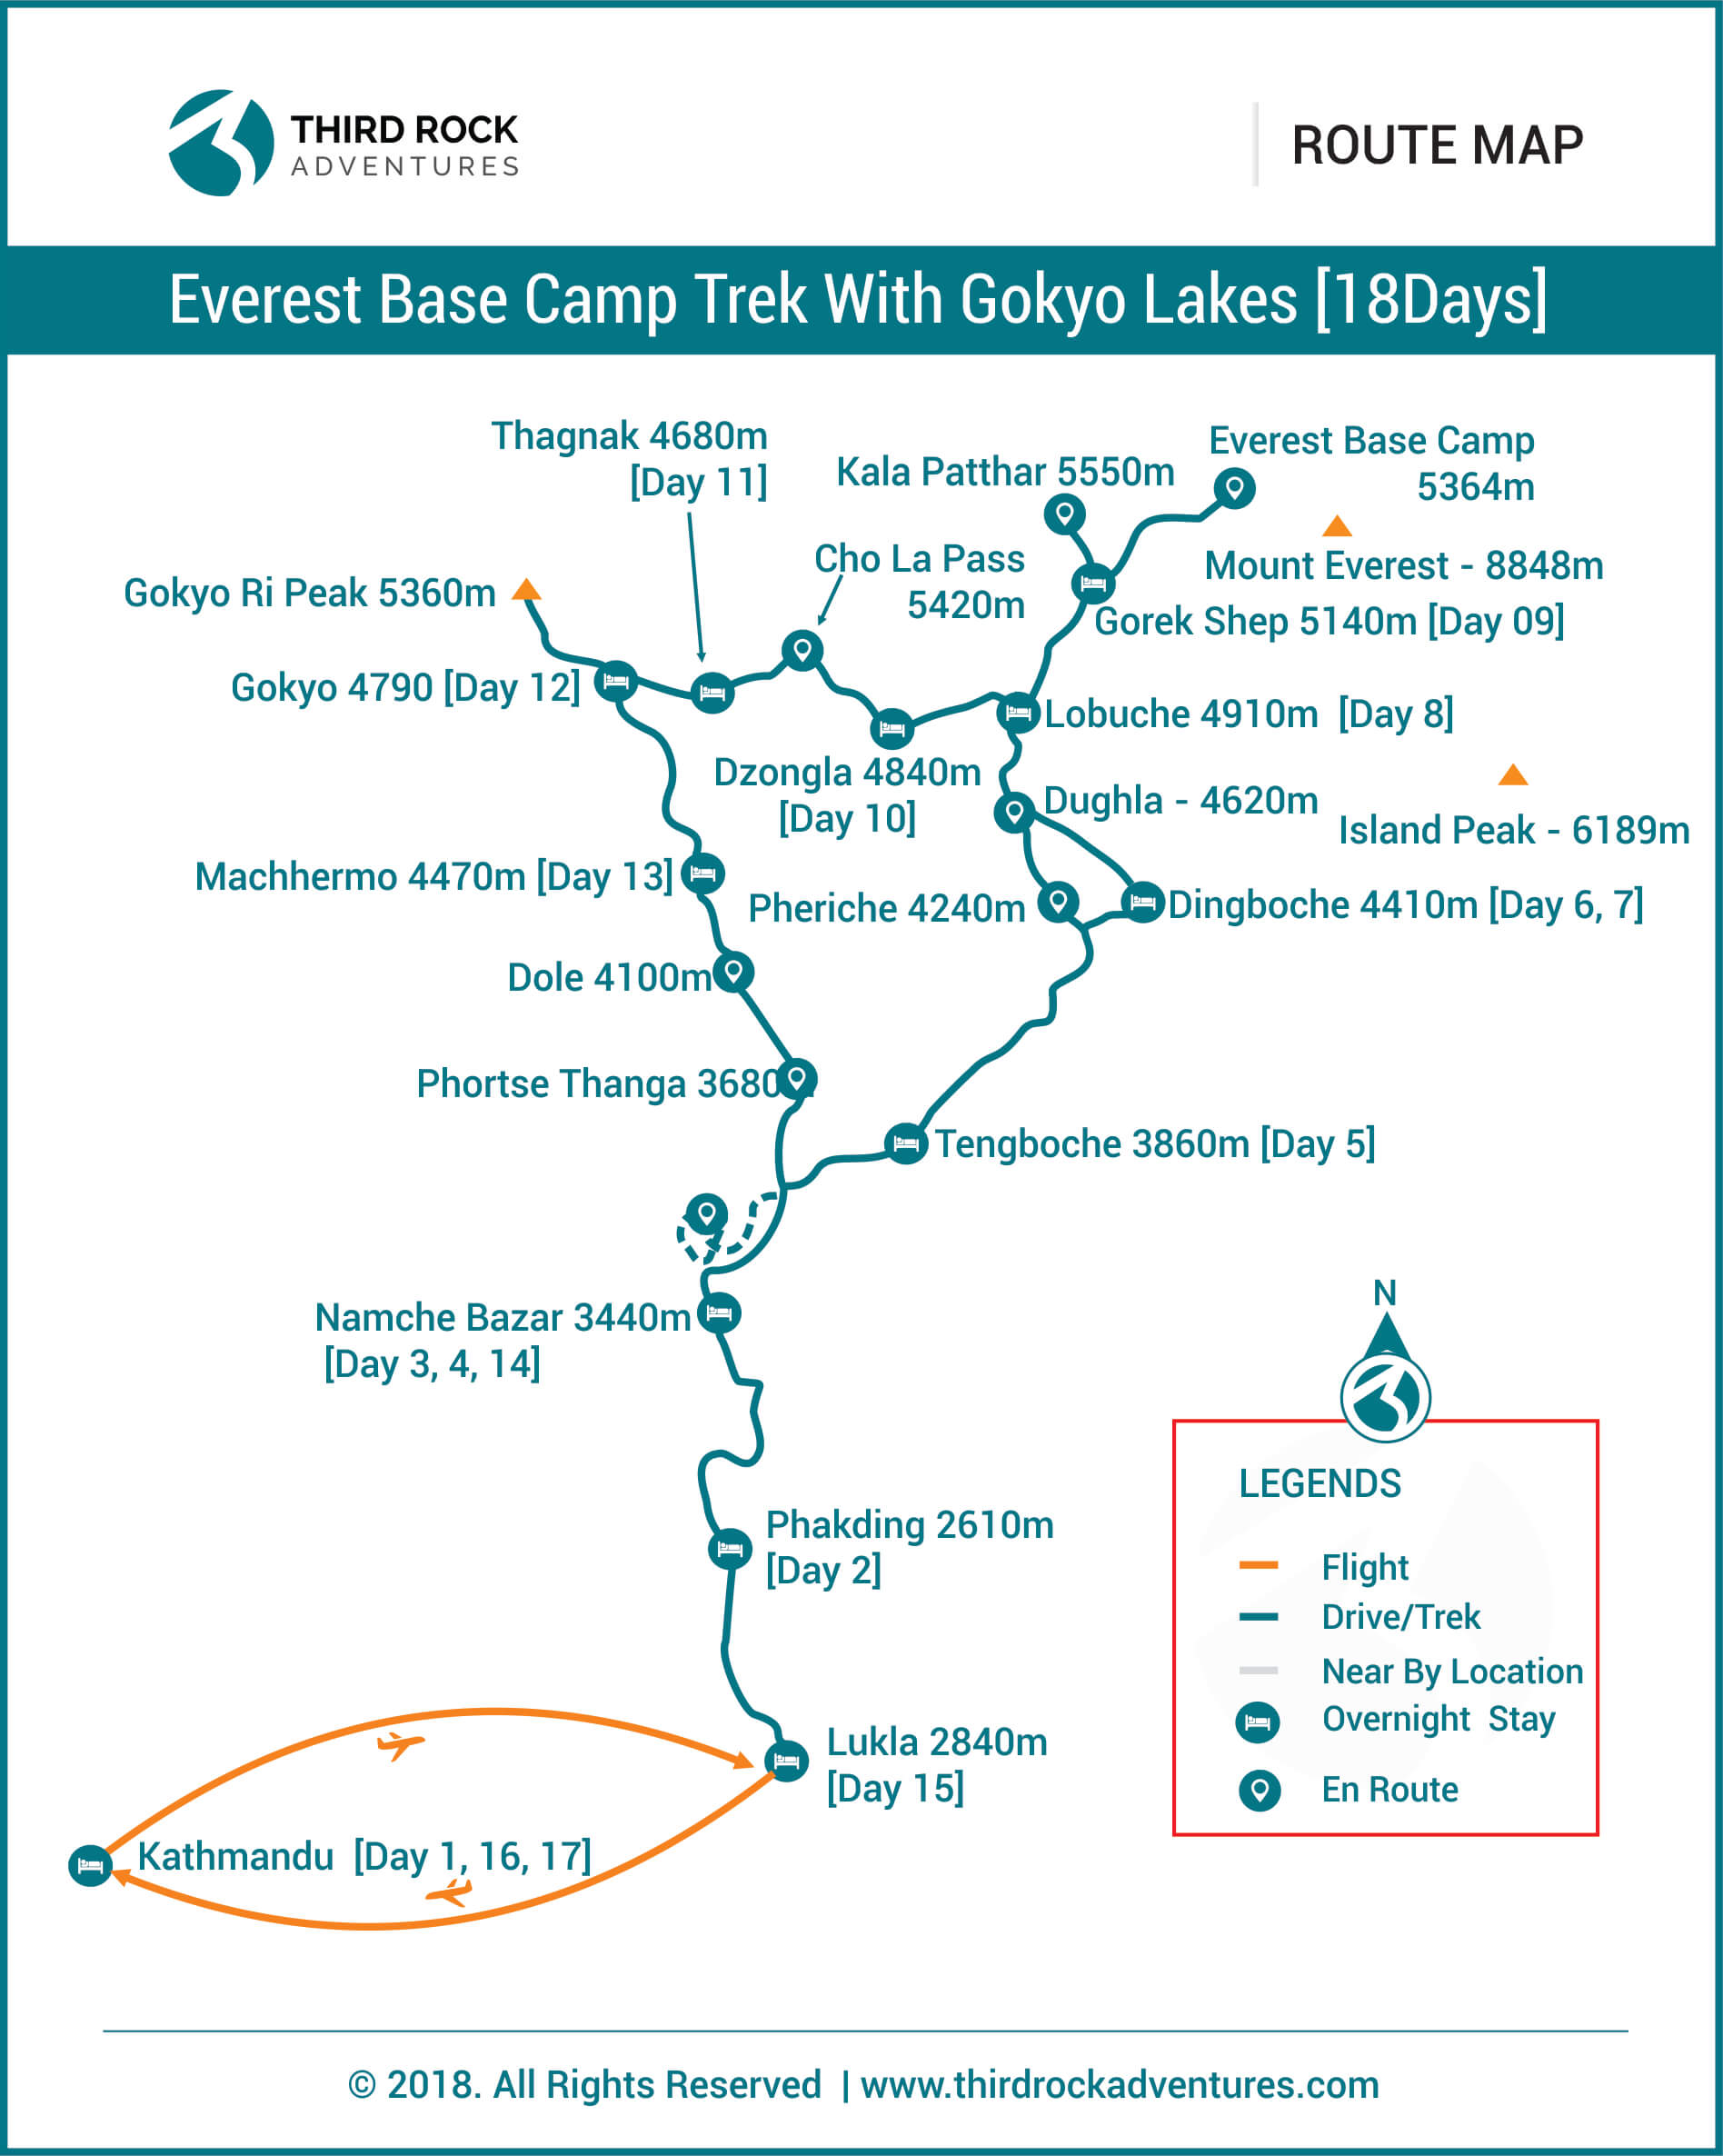 Everest Base Camp Trek With Gokyo Lakes 18 days Route Map